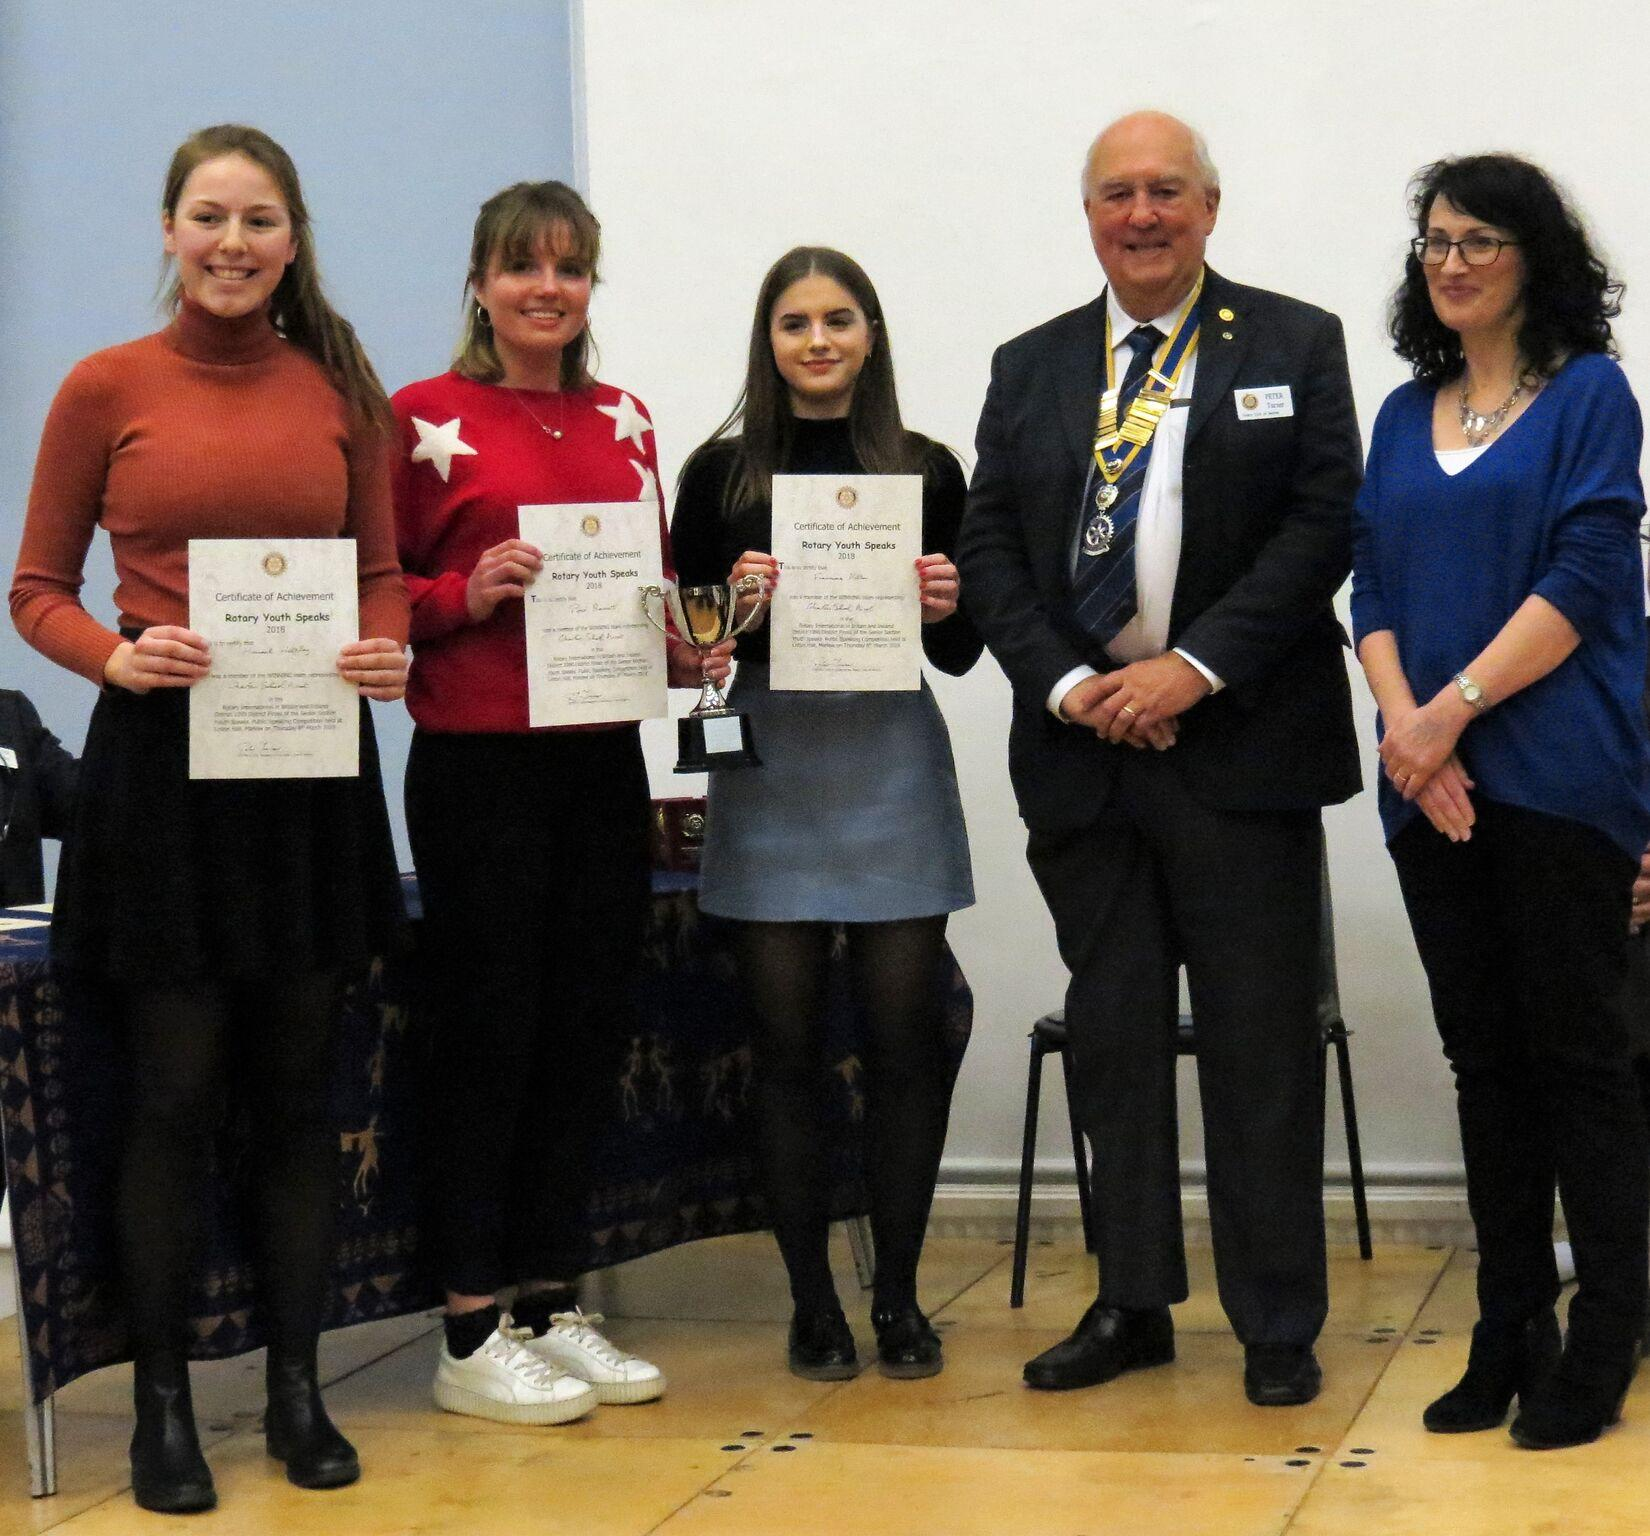 rotary-club-of-wokingham-youth-speaks.jpg